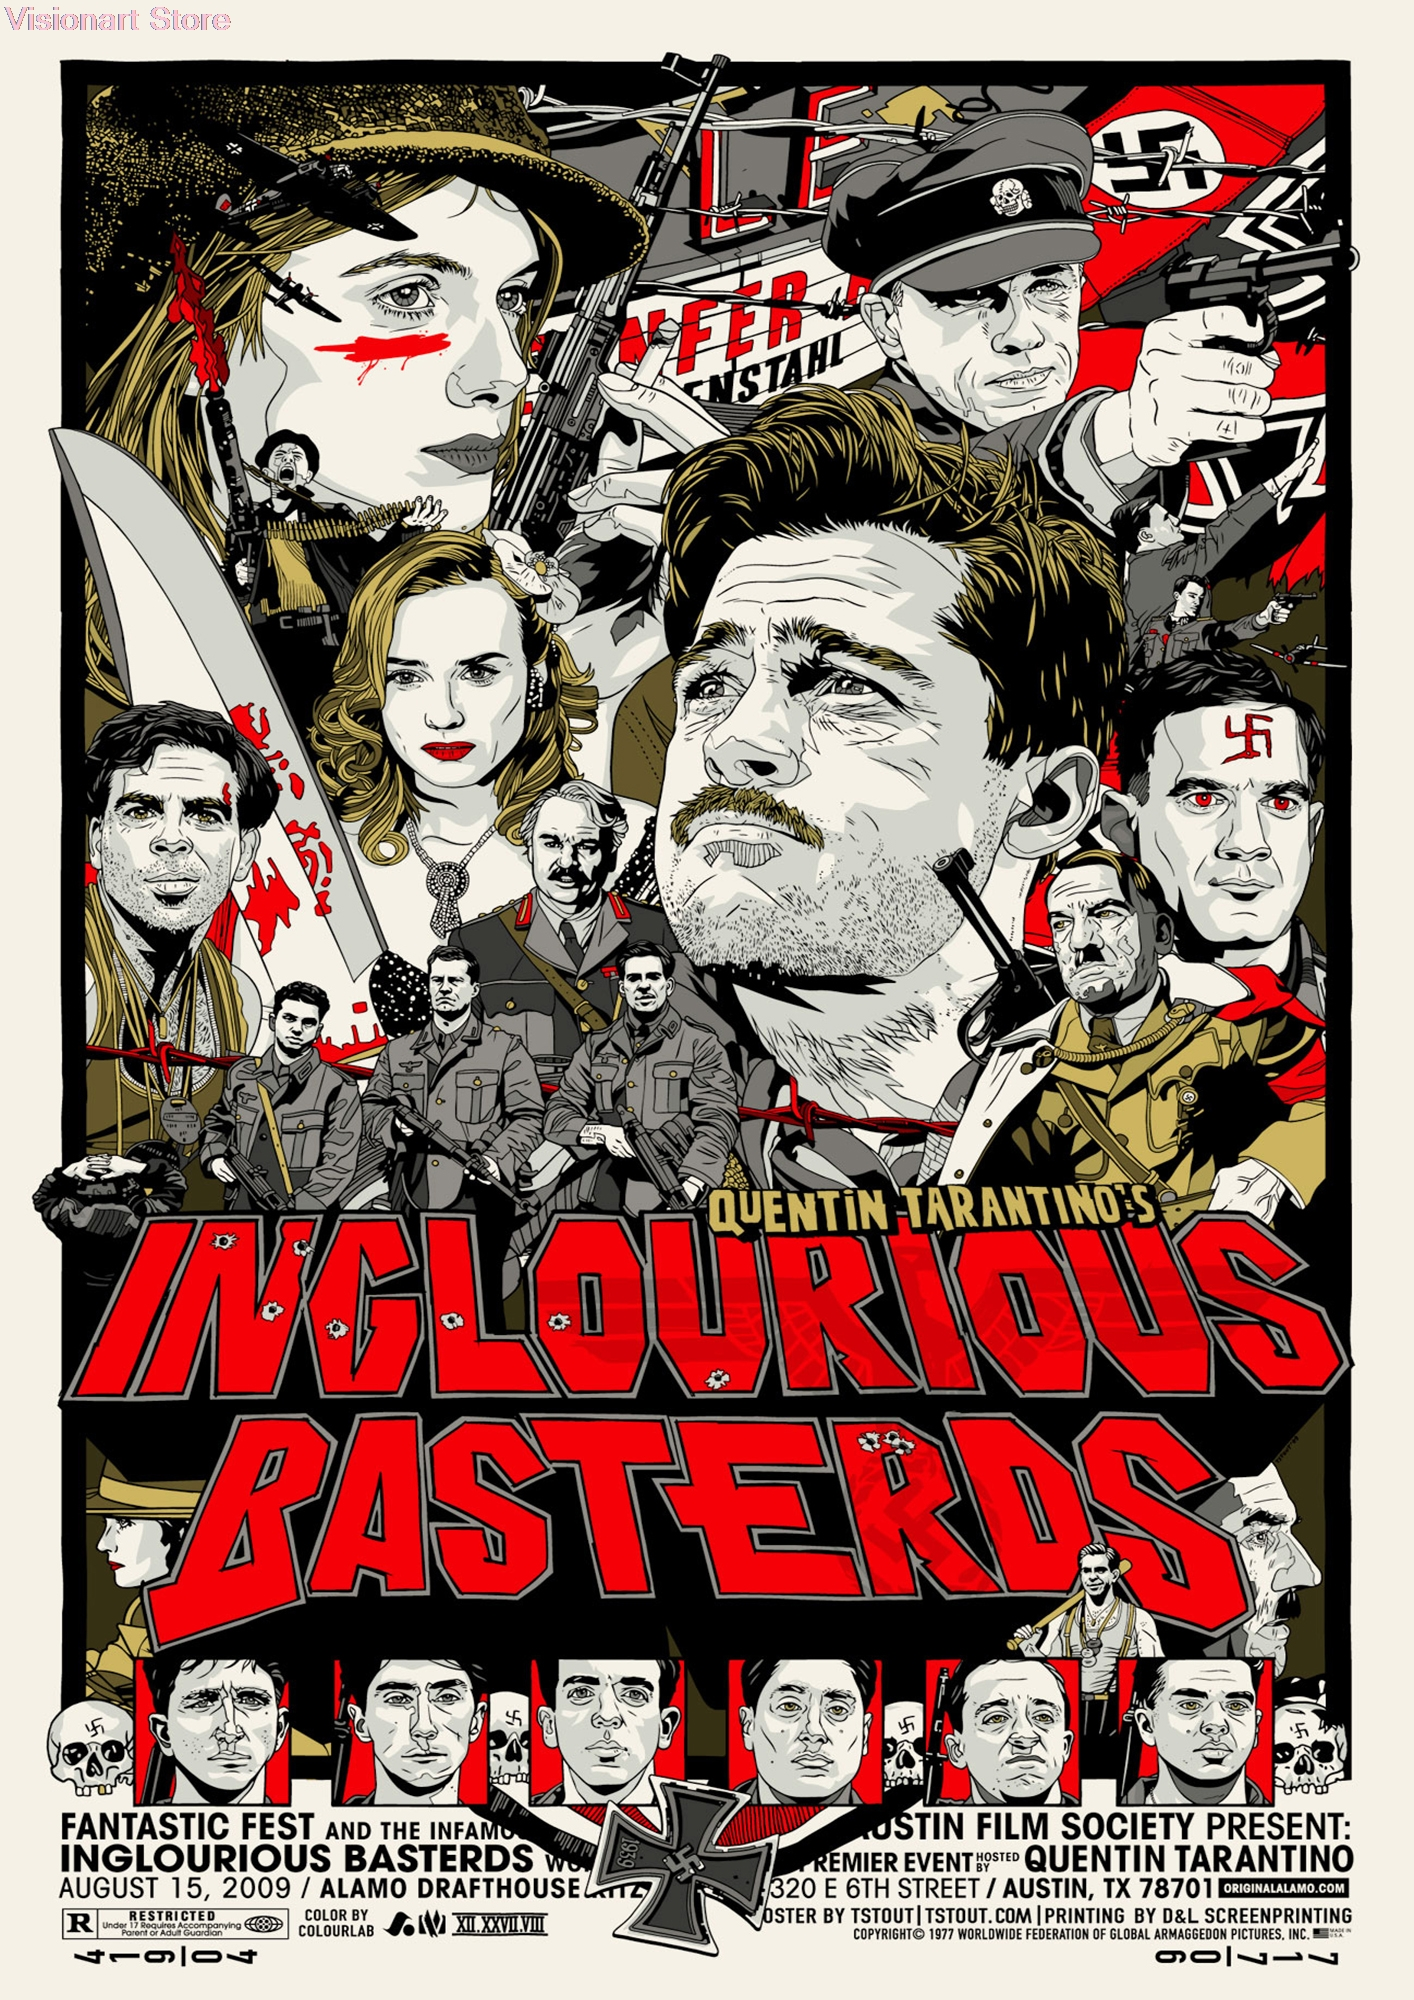 inglourious-basterds-posters-quentin-font-b-tarantino-b-font-posters-vintage-posters-home-decro-wall-stickers-no-frame-mo73